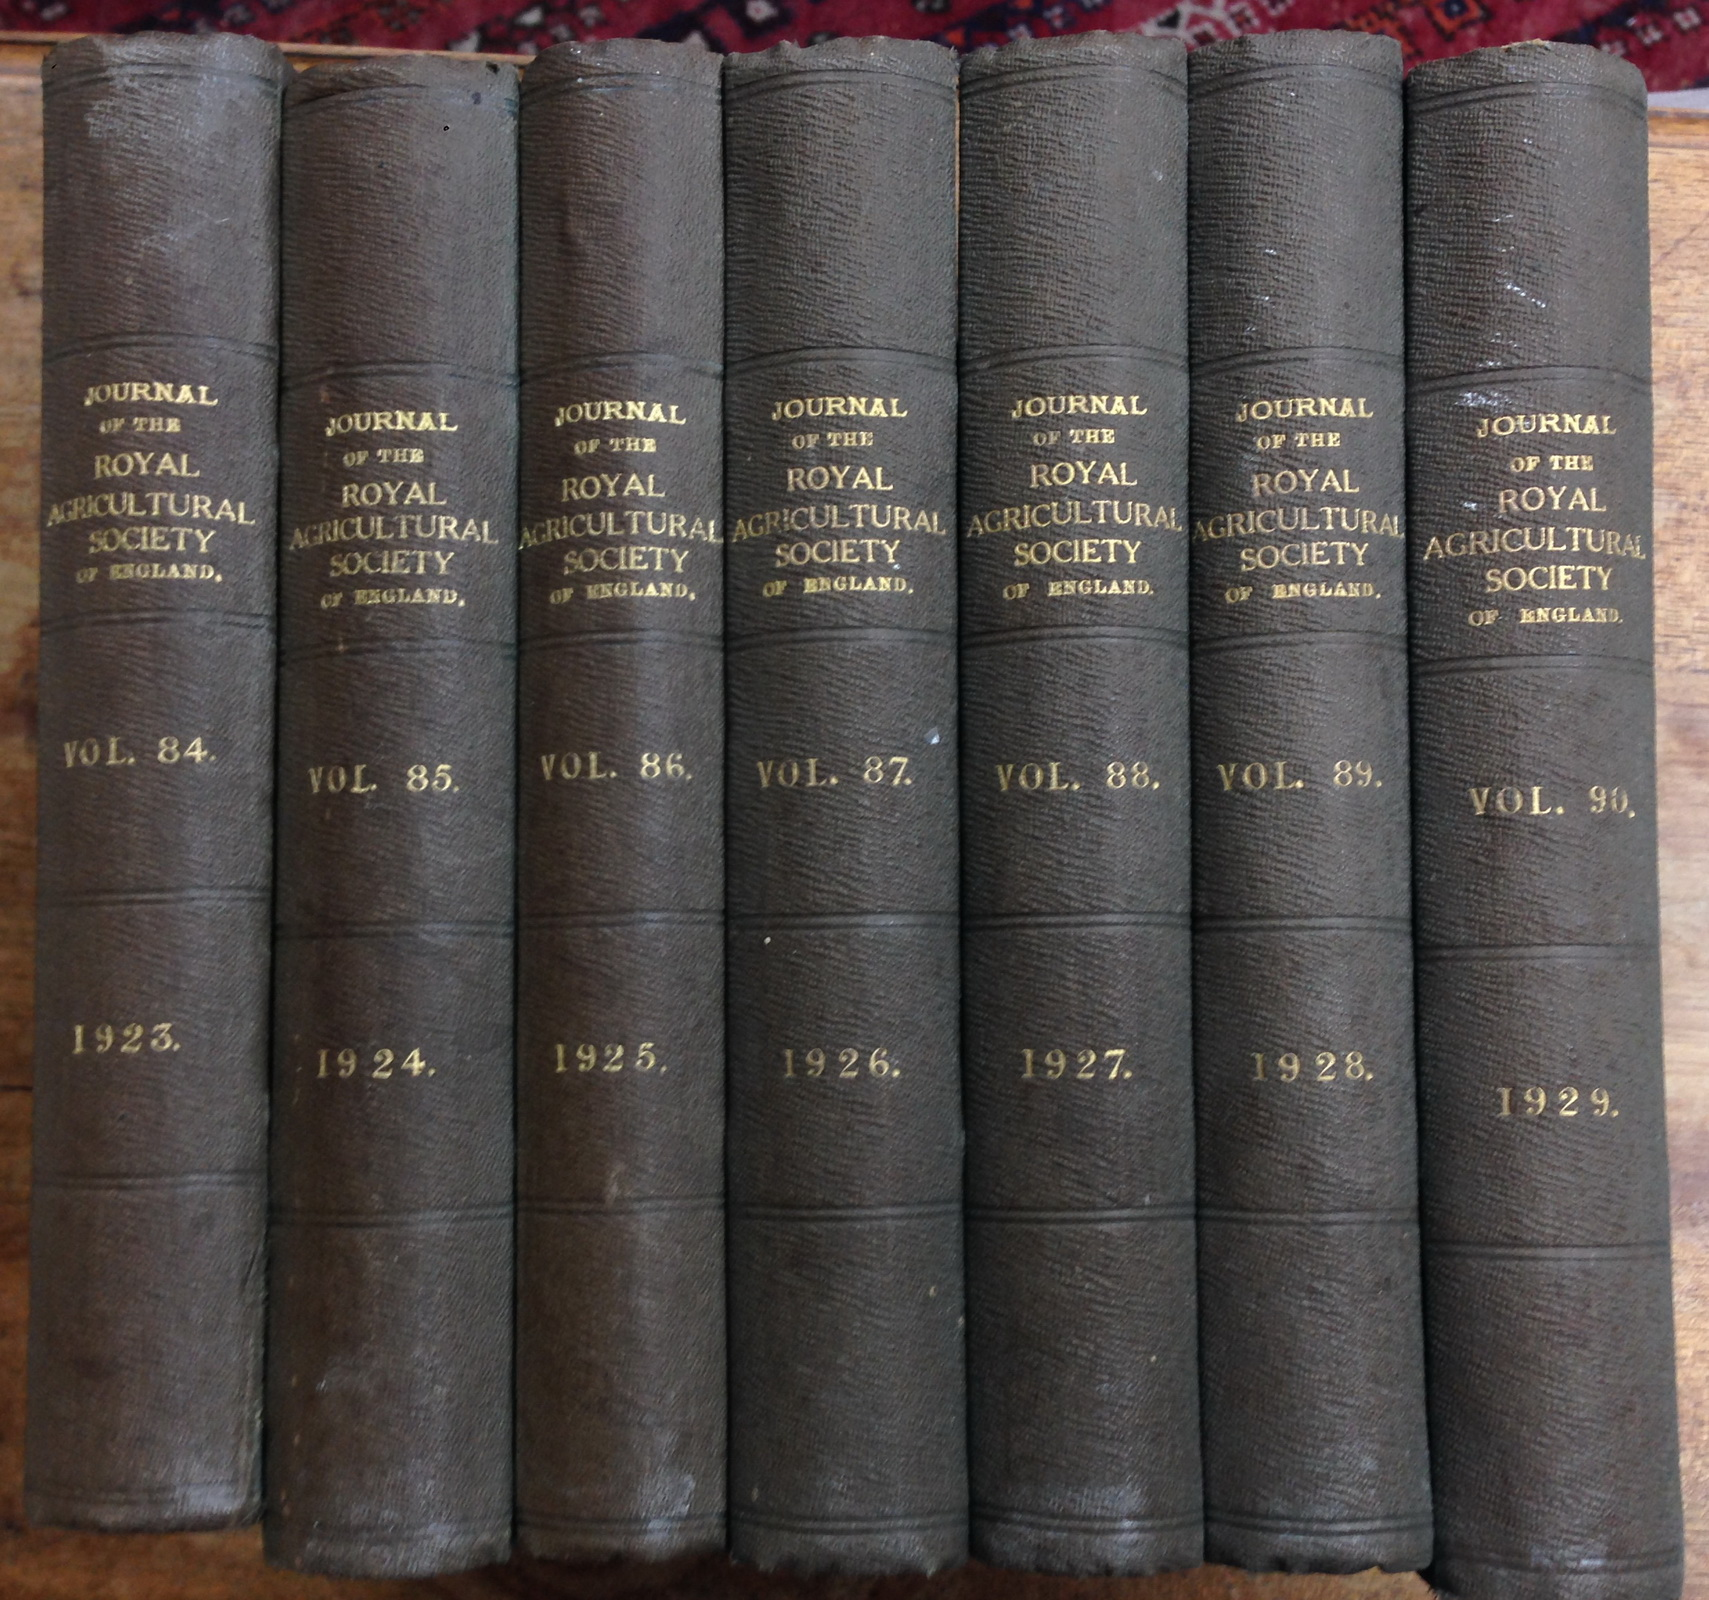 The Journal of the Royal Agricultural Society of England. Volumes 84 (1923) - Volume 90 (1929)